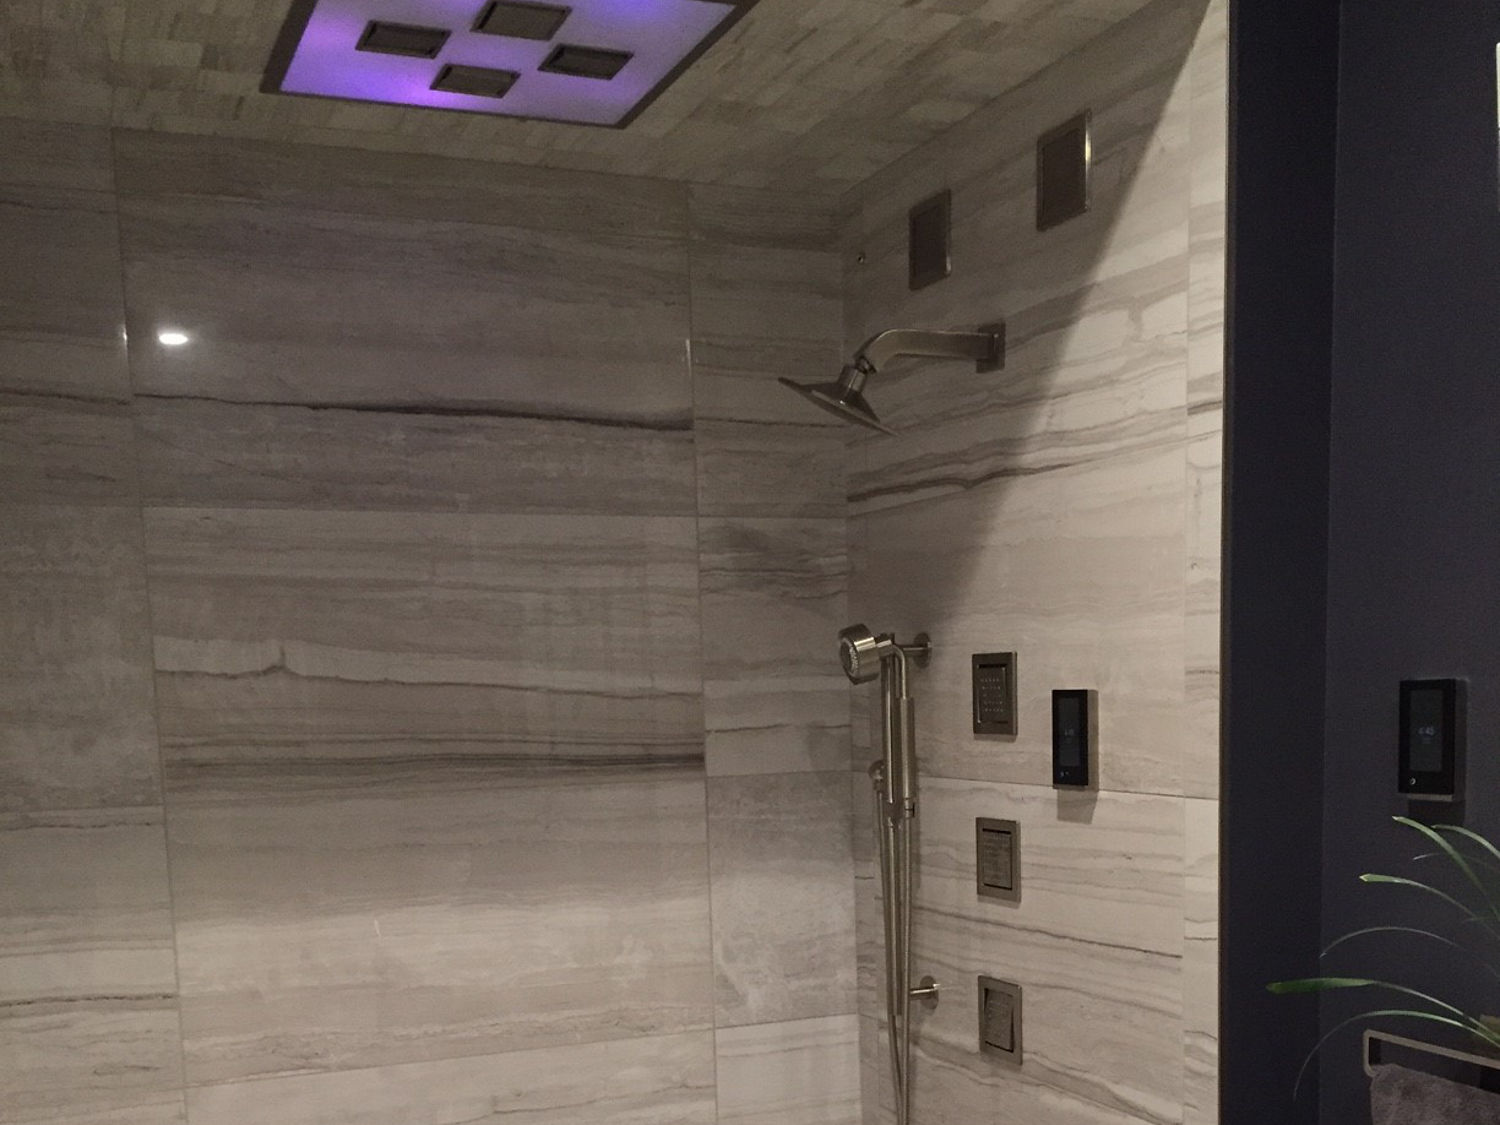 Kohler DTV+ Shower suite